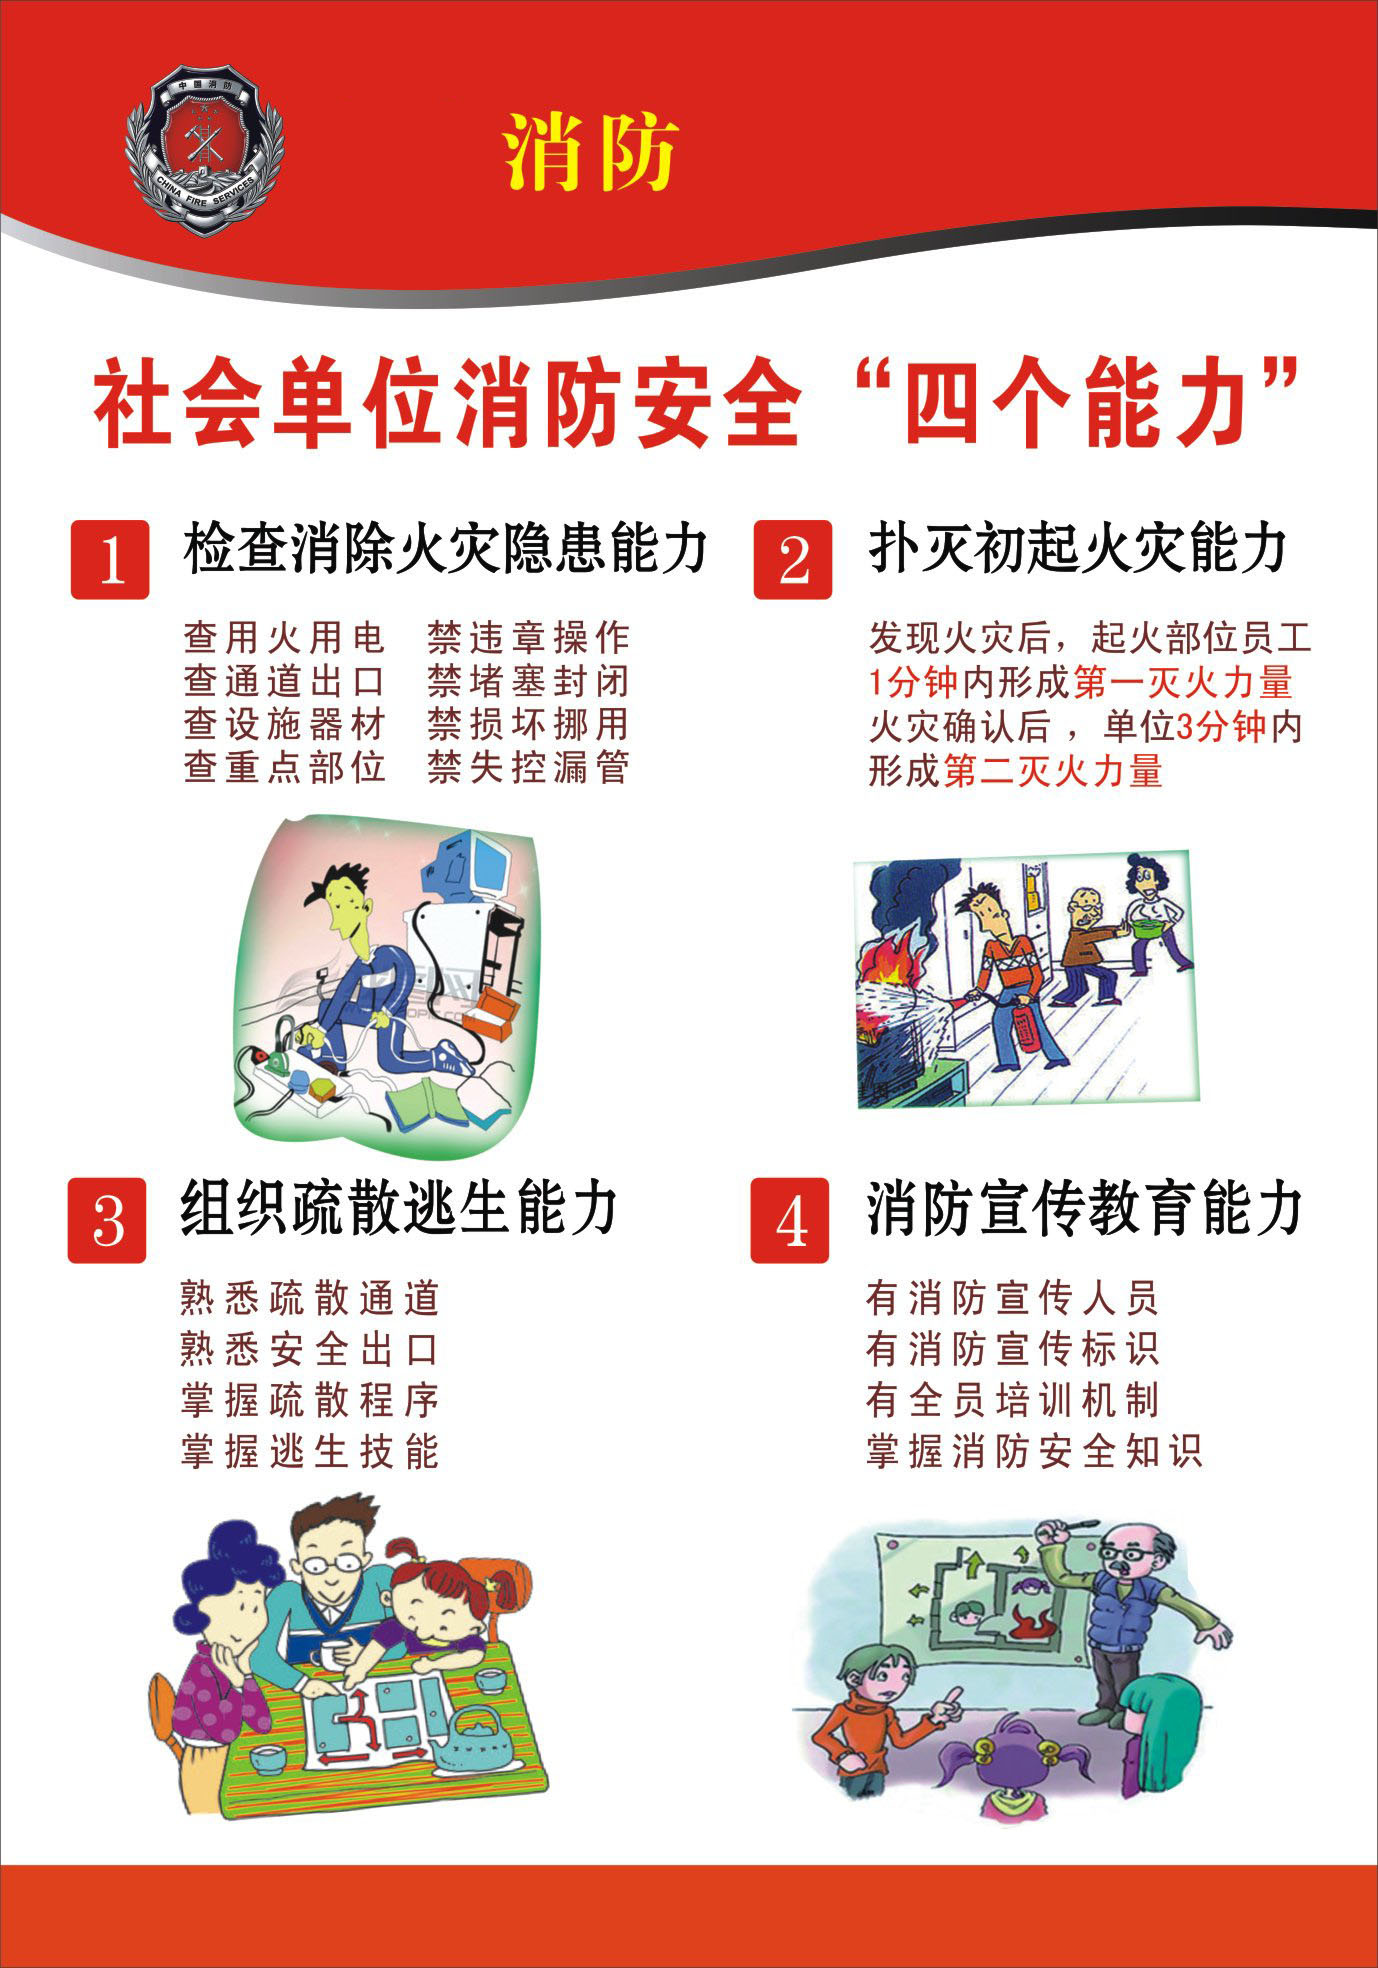 730 posters photo inkjet printing 1052 5 consumers against social unit hotel fire system security four capacity